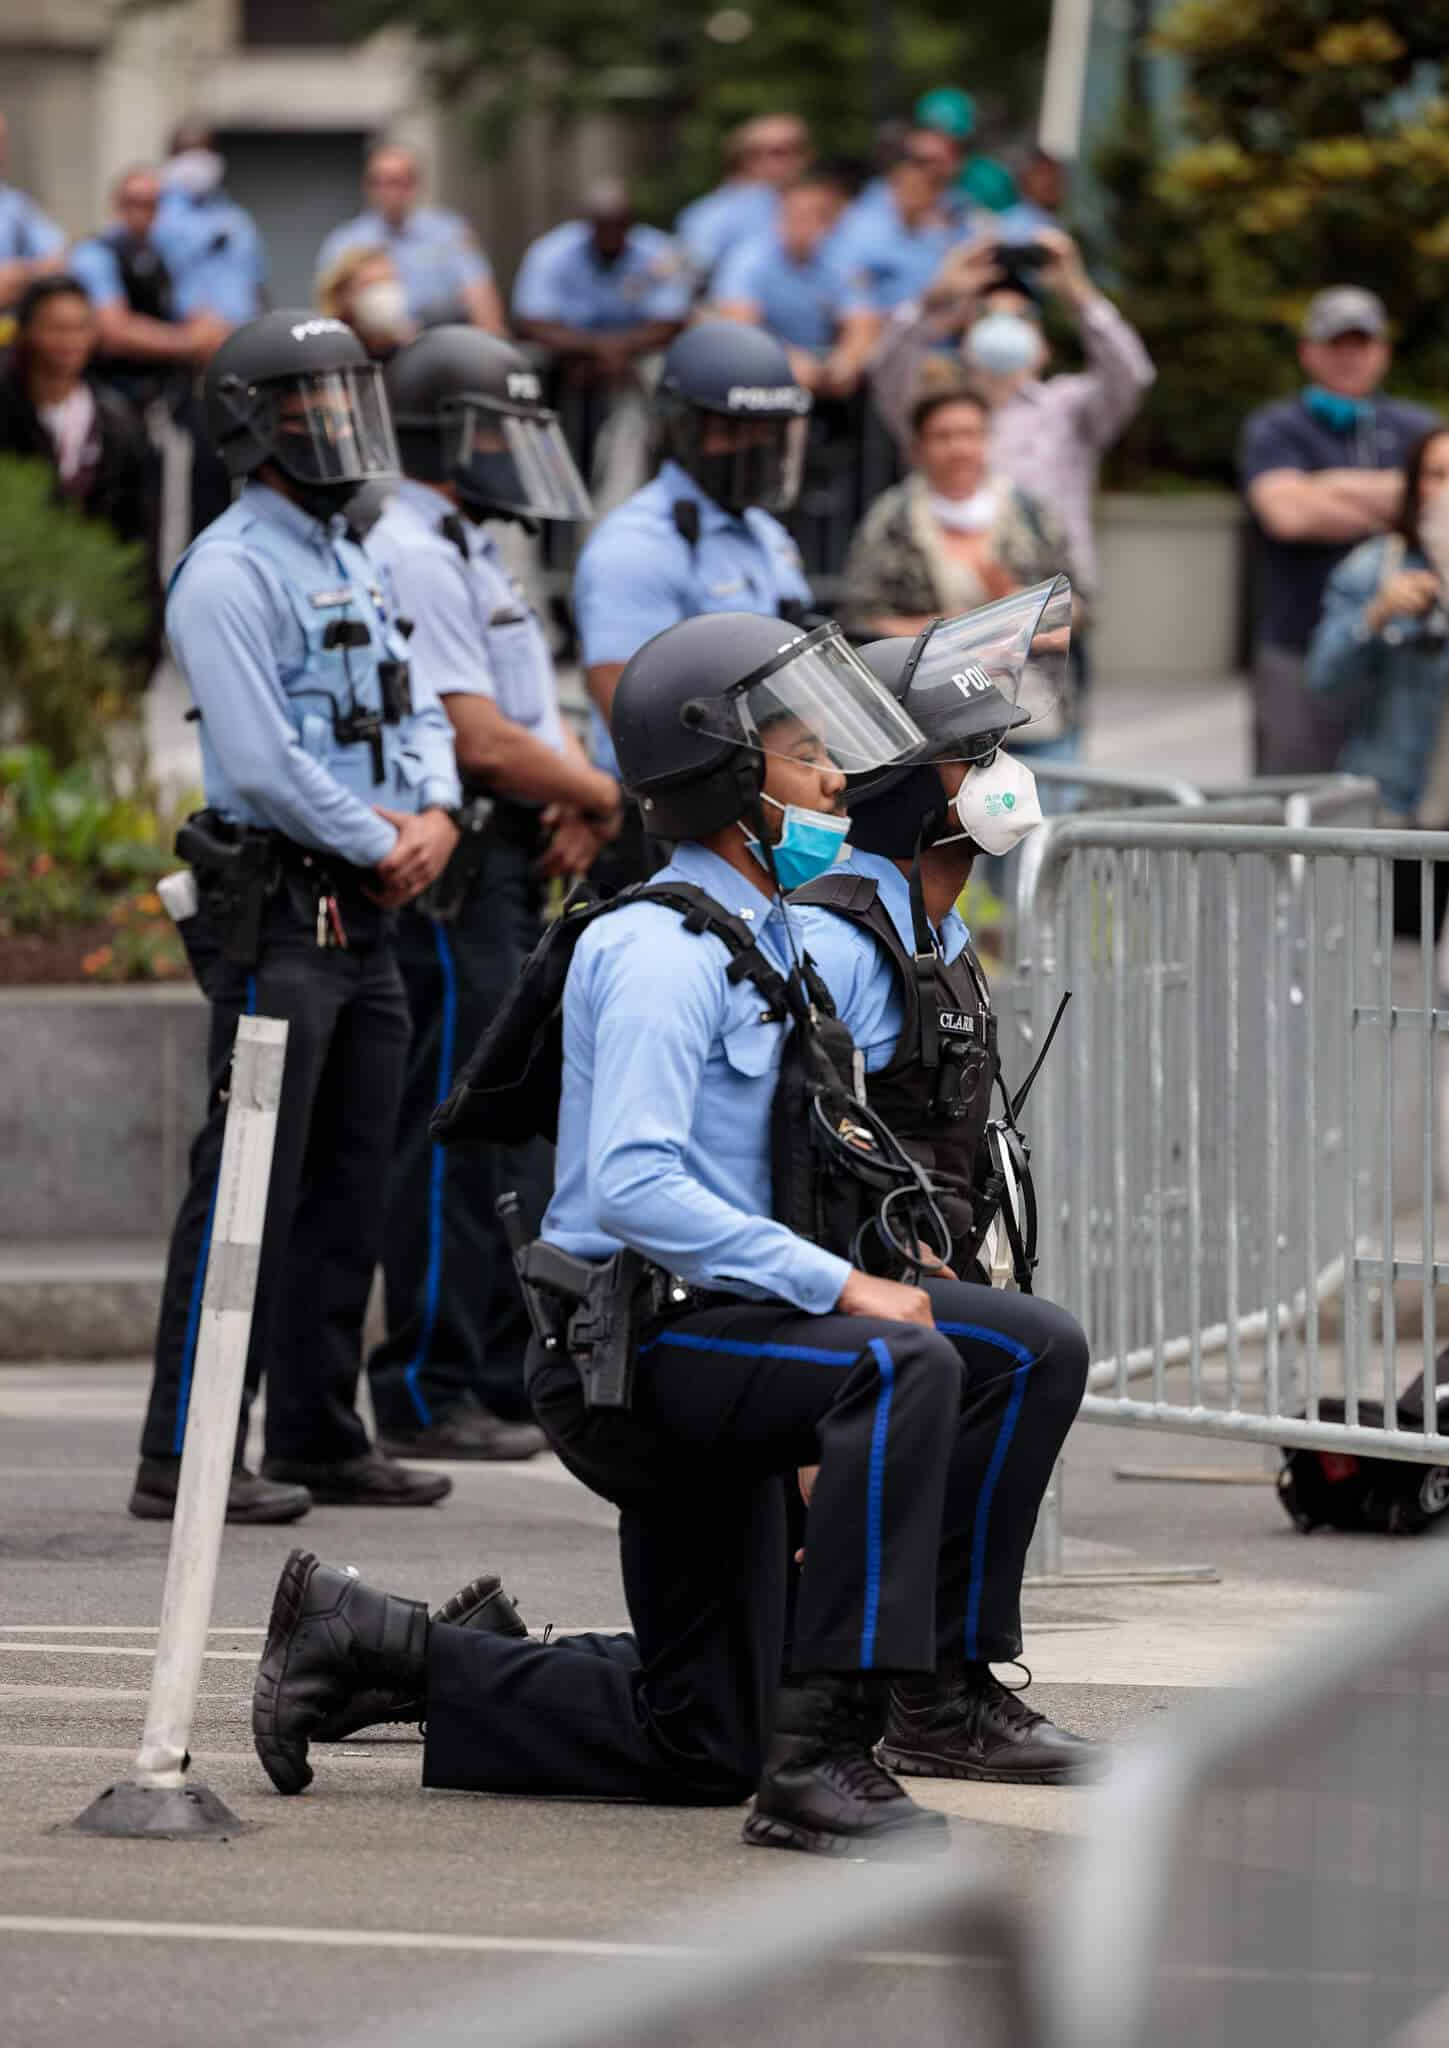 Police Taking a Knee - Photo by Rob Bulmahn